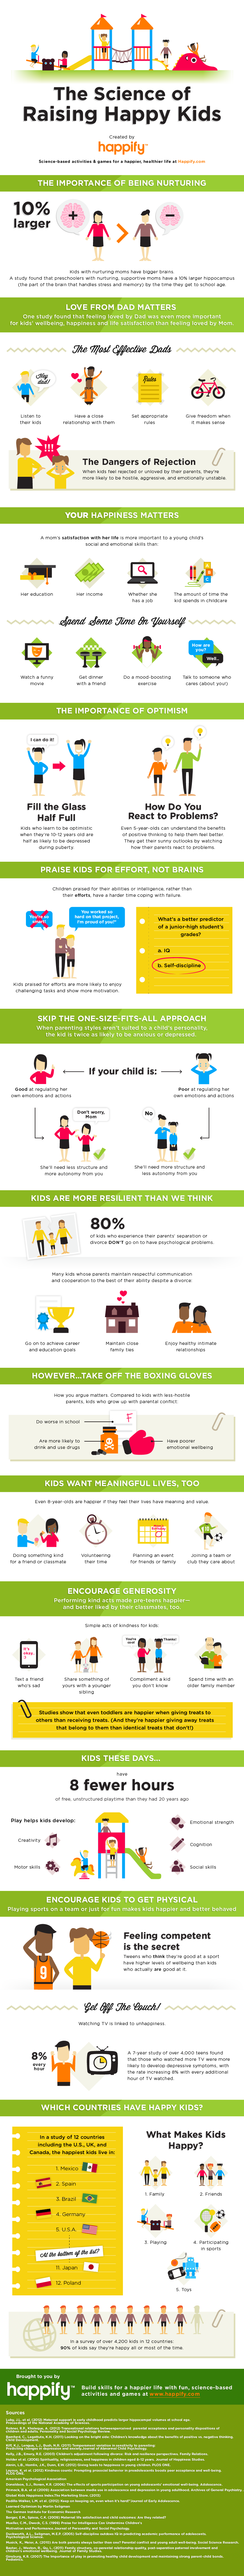 2014-03-11-happykidsinfographic.png